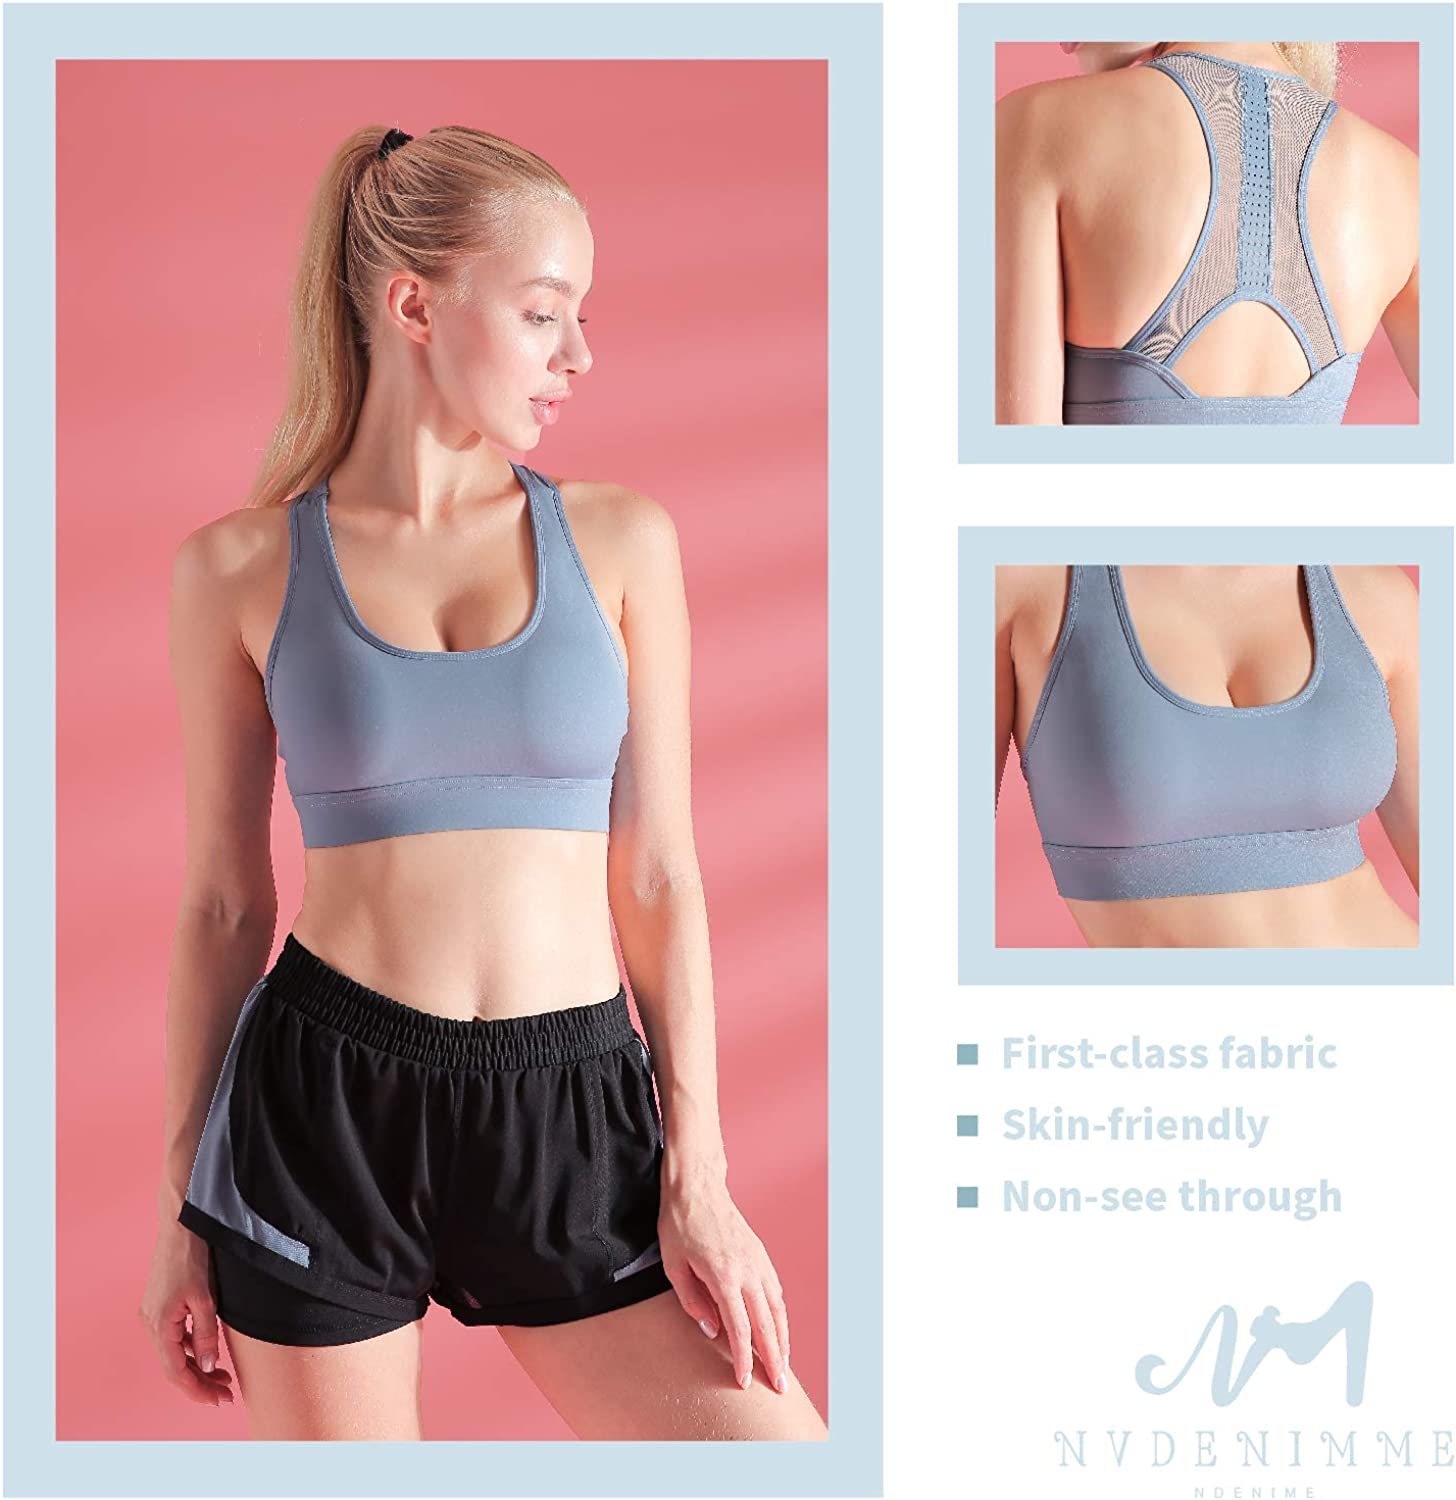 NVDENIMME Colorful Sports Bra for Women Seamless Quick Dry Workout Yoga Top with Medium Support